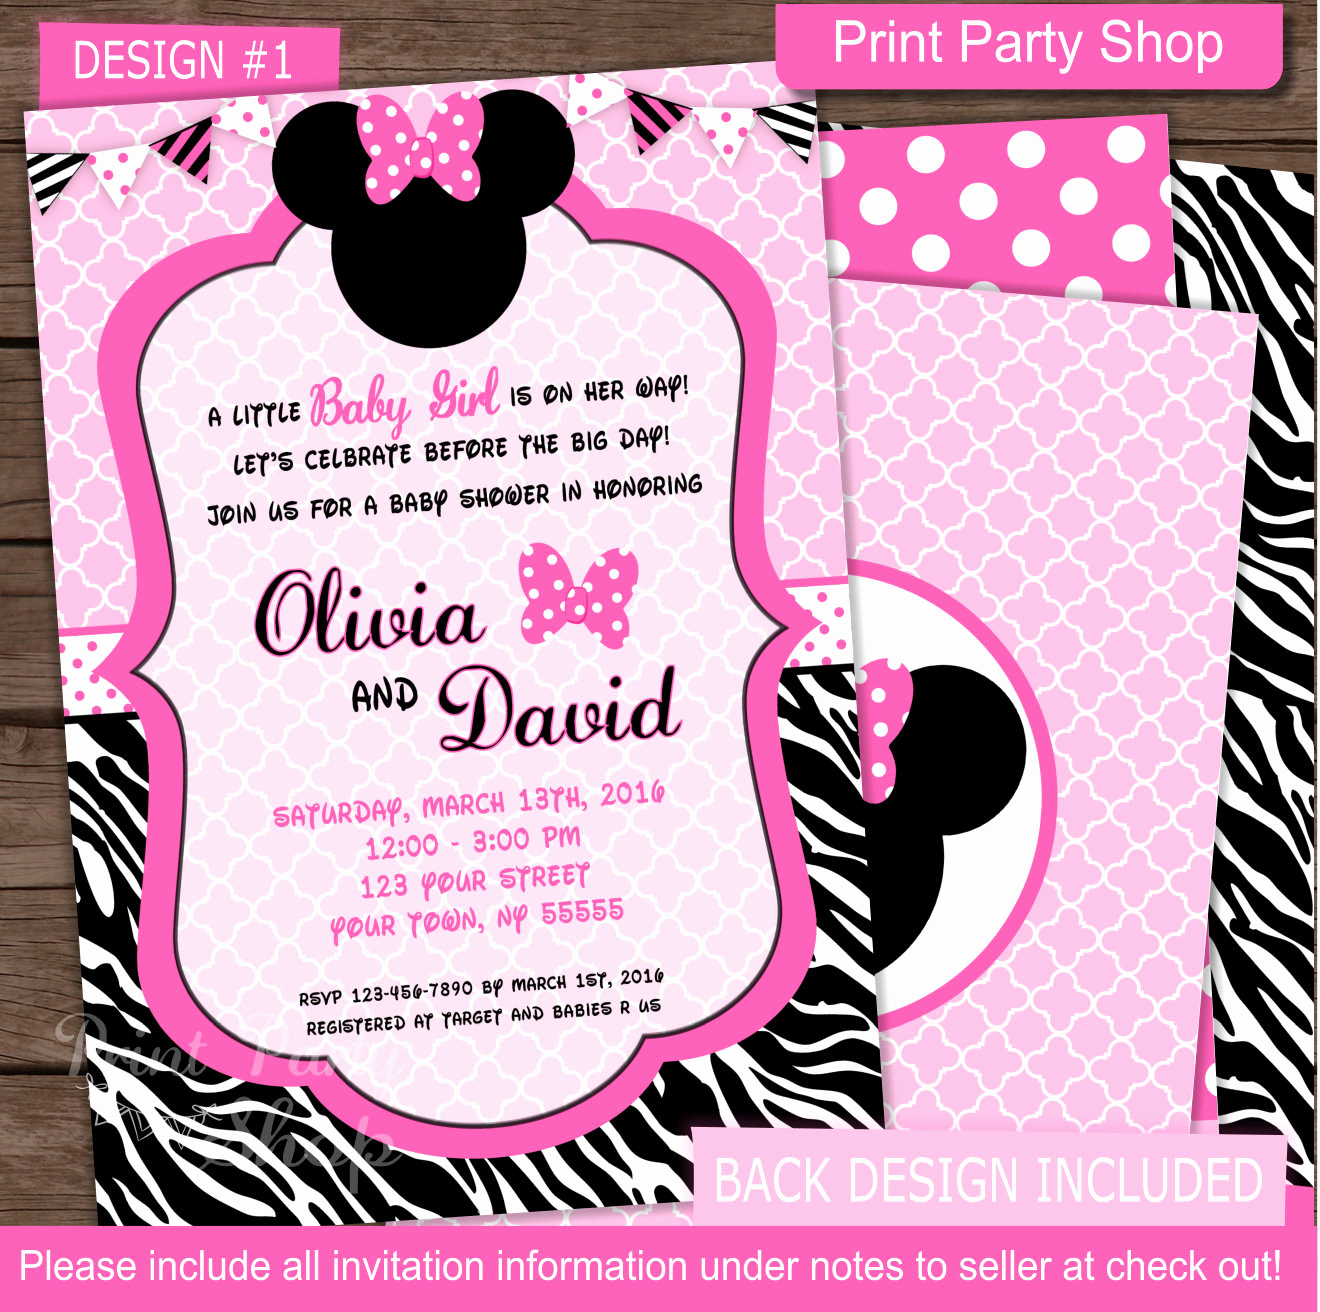 Baby Minnie Mouse Invitation Awesome Minnie Mouse Baby Shower Invitation Baby Shower Invitation